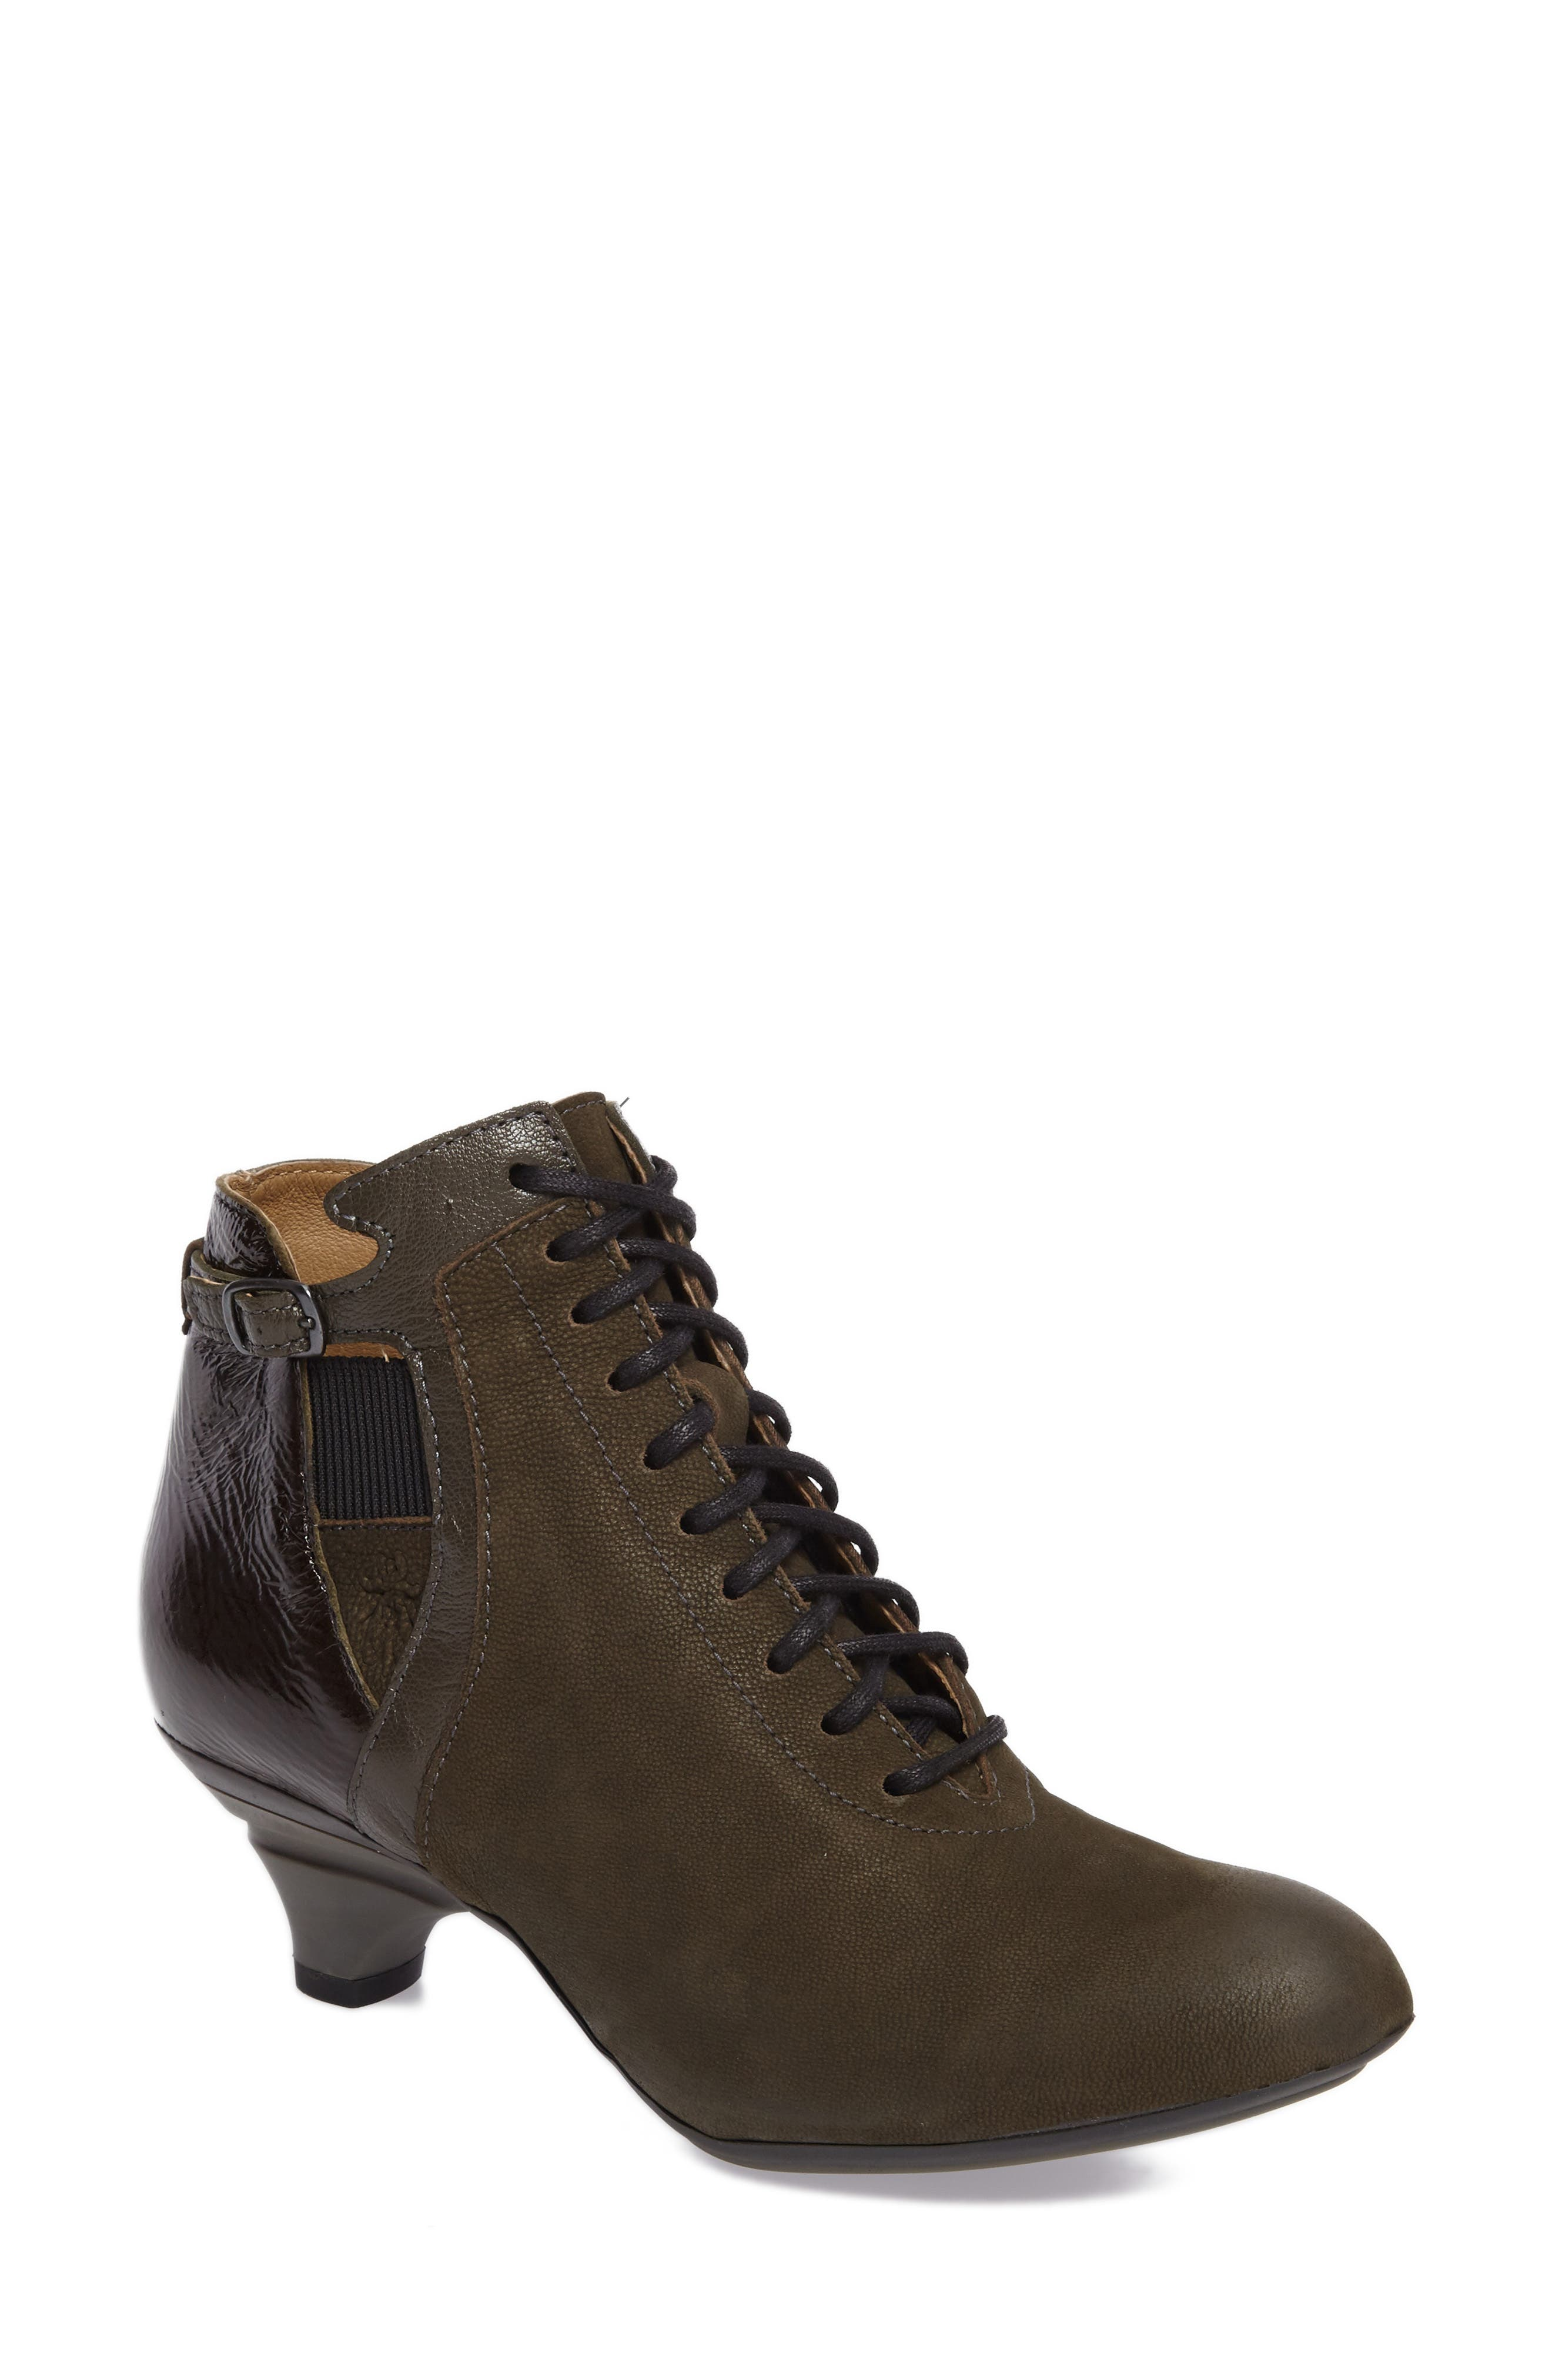 Bugs Bootie,                         Main,                         color, Seaweed Leather